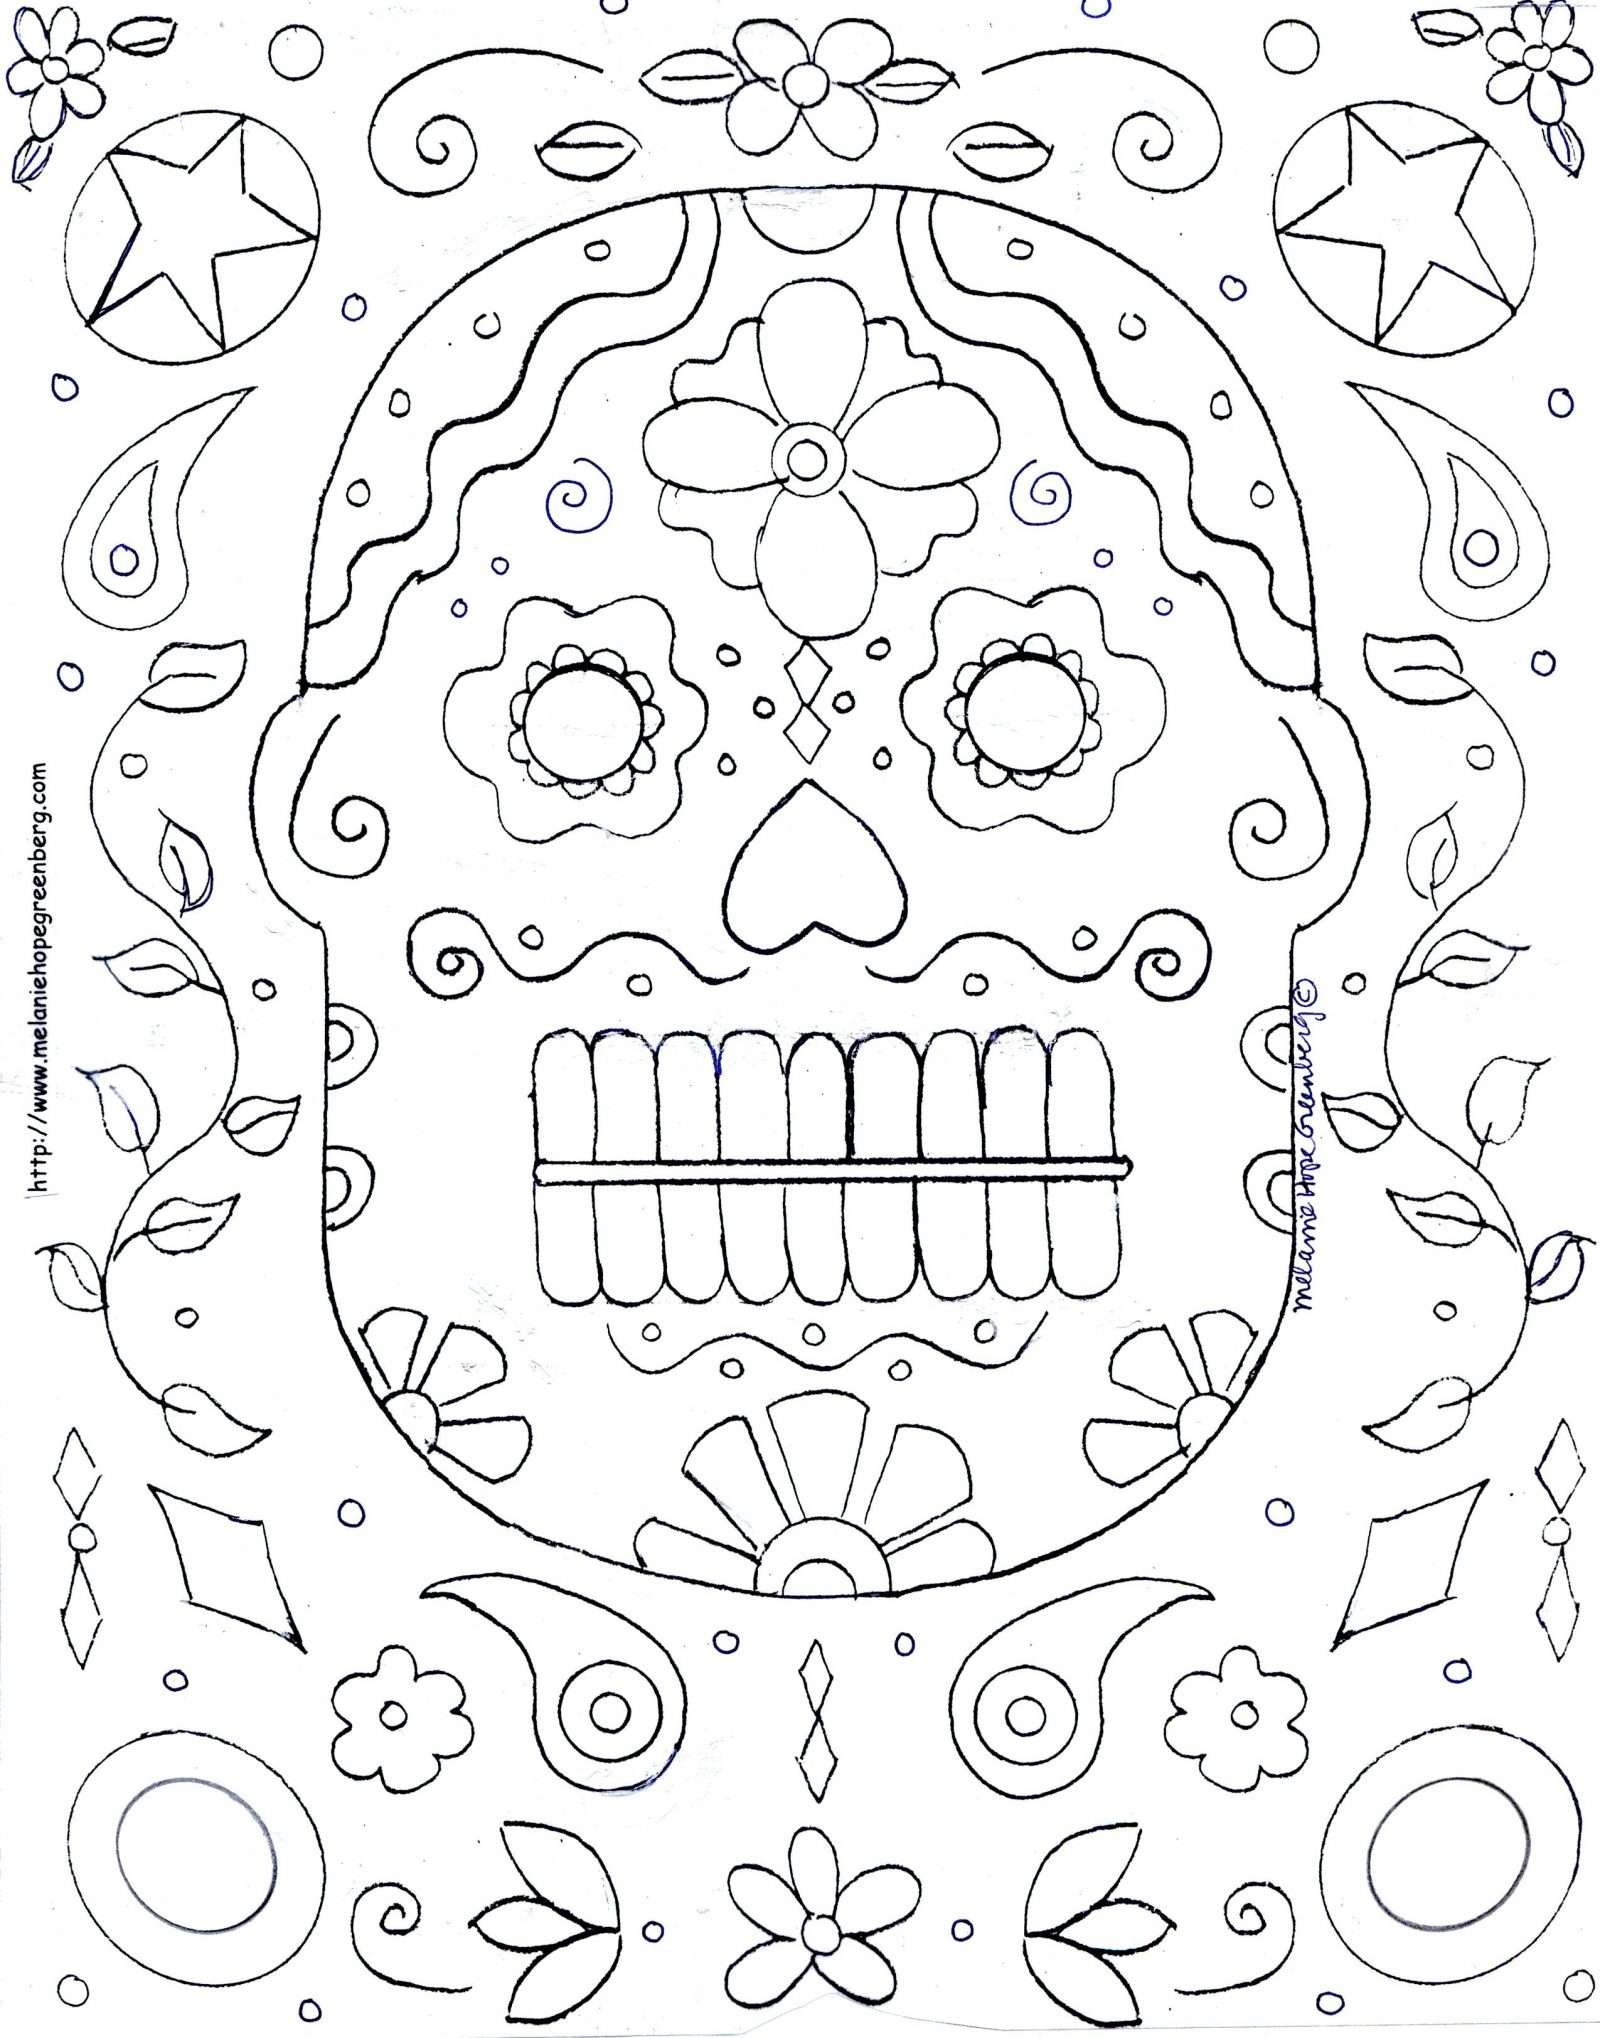 Coloring Pages : Coloring Math Worksheetsth Grade Free Color throughout Printable Multiplication Worksheets Color By Number